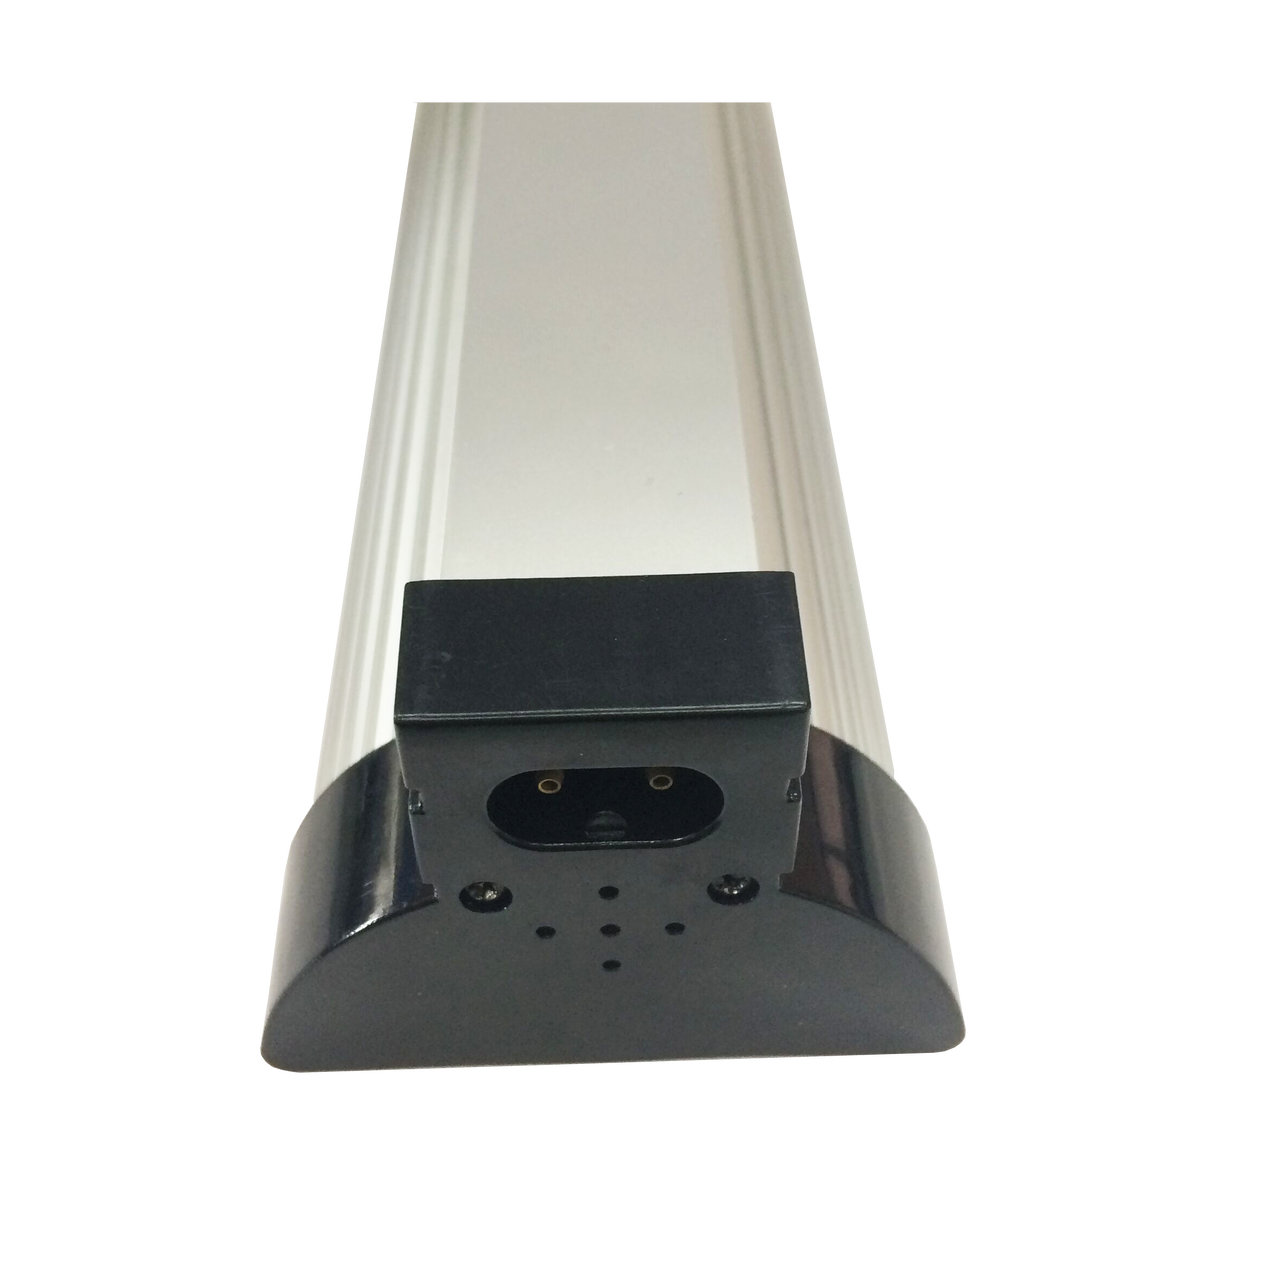 FloraGear Flora LS24 LED Light Strip 6400k 24w - end cap: link up to 7 fixtures using link cable included